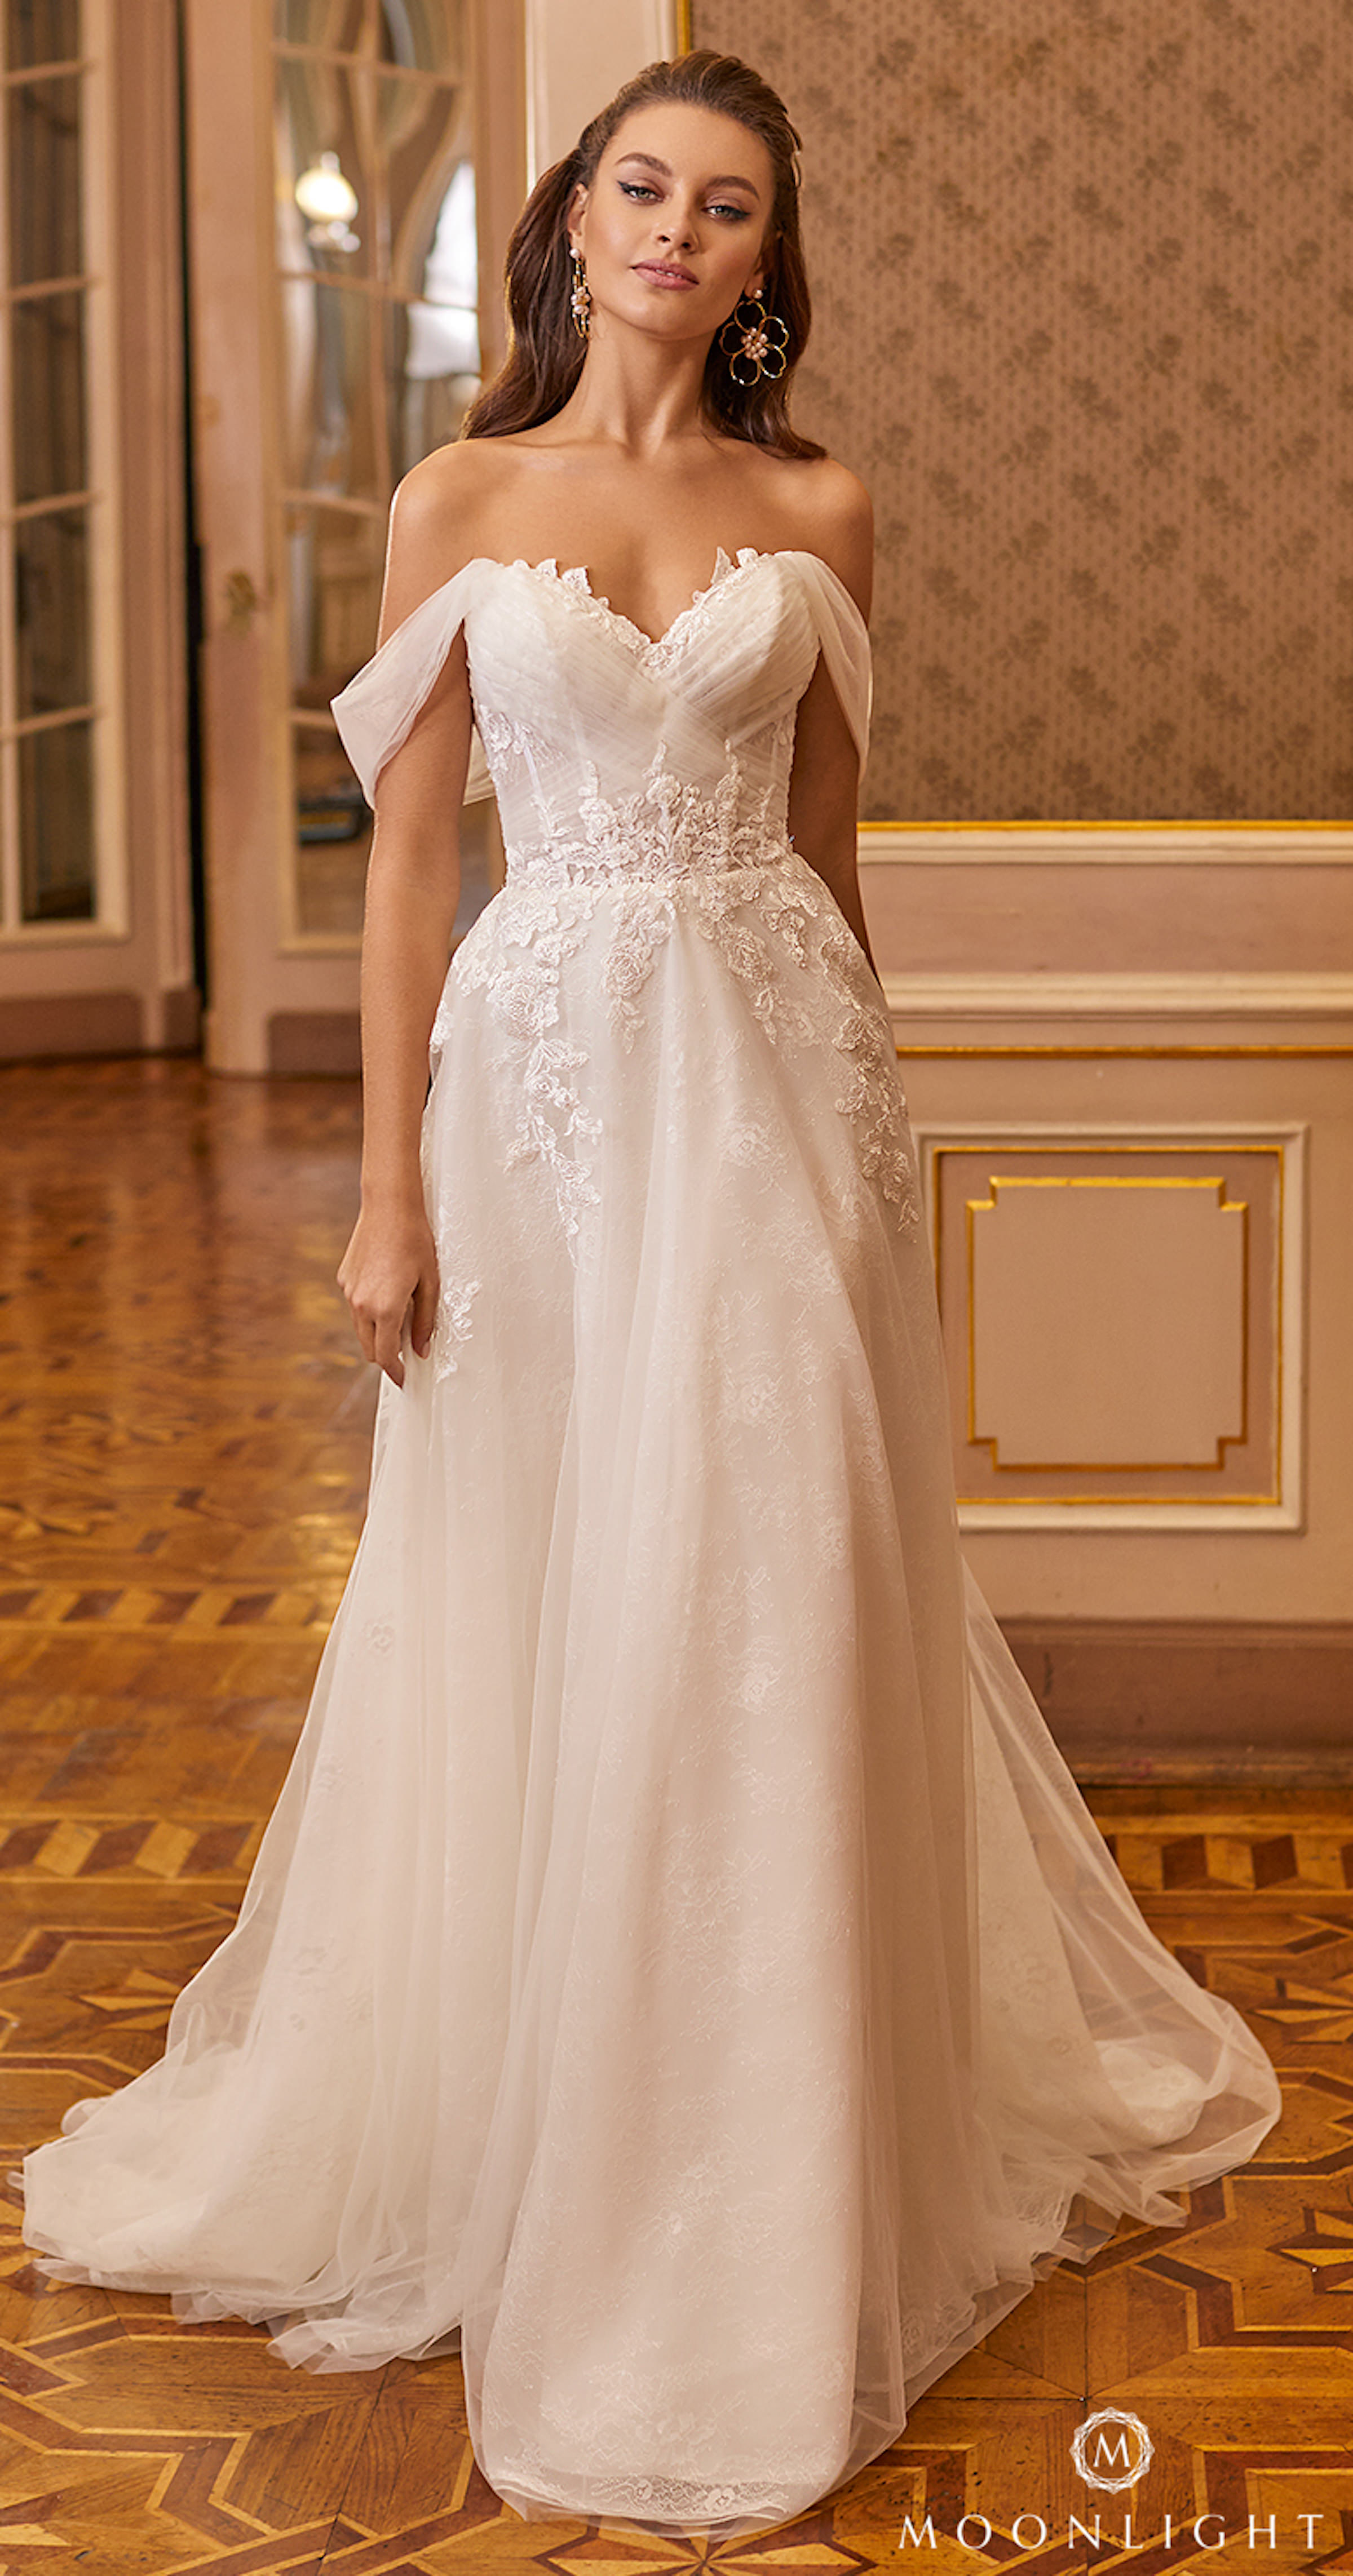 Gilded X Moonlight Collection Fall 2021 Wedding Dresses - J6821